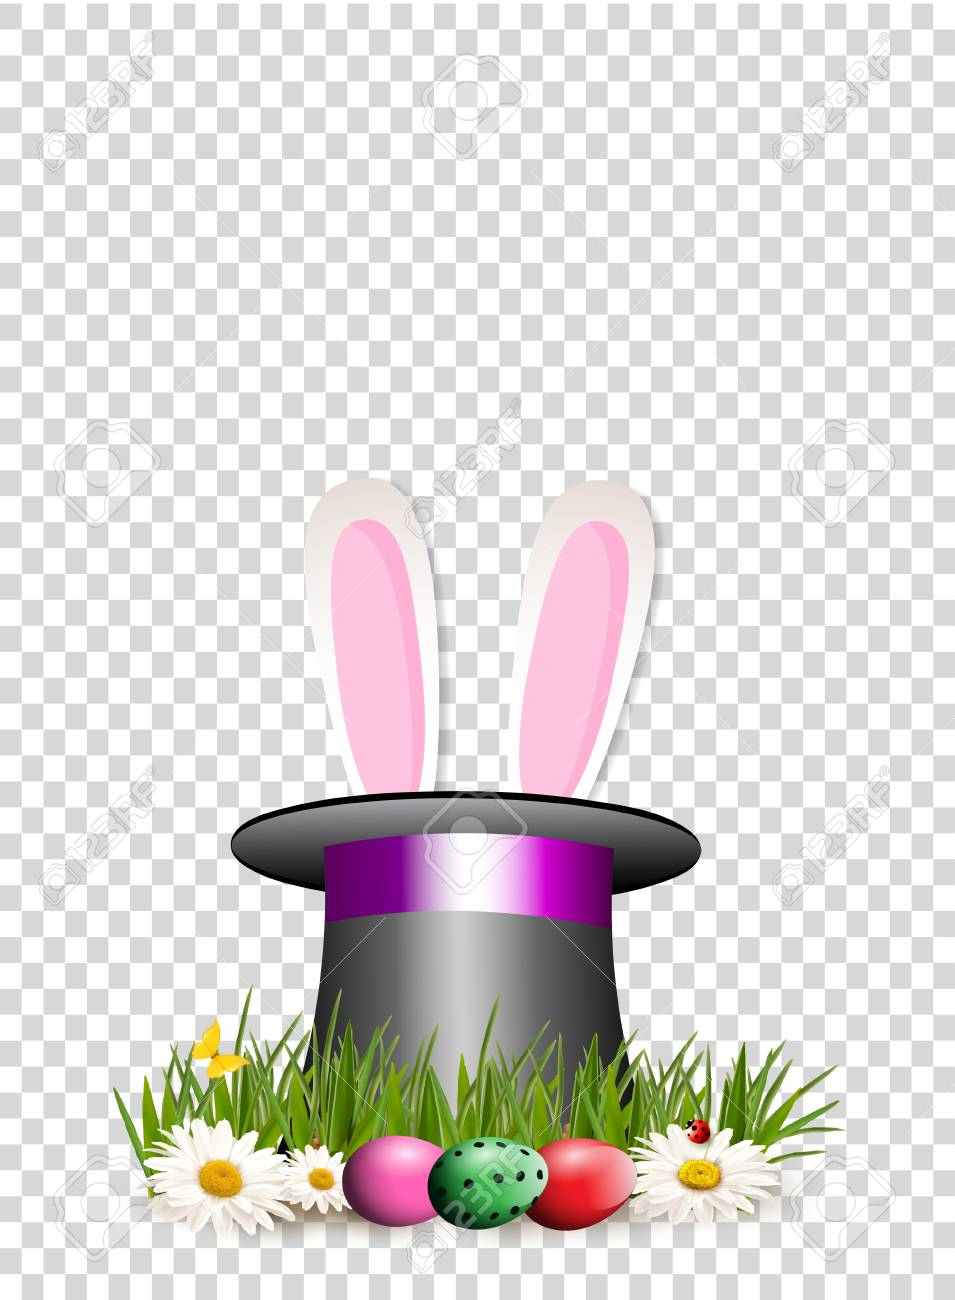 Happy Easter clip art for greeting card with cartoon pink bunny...